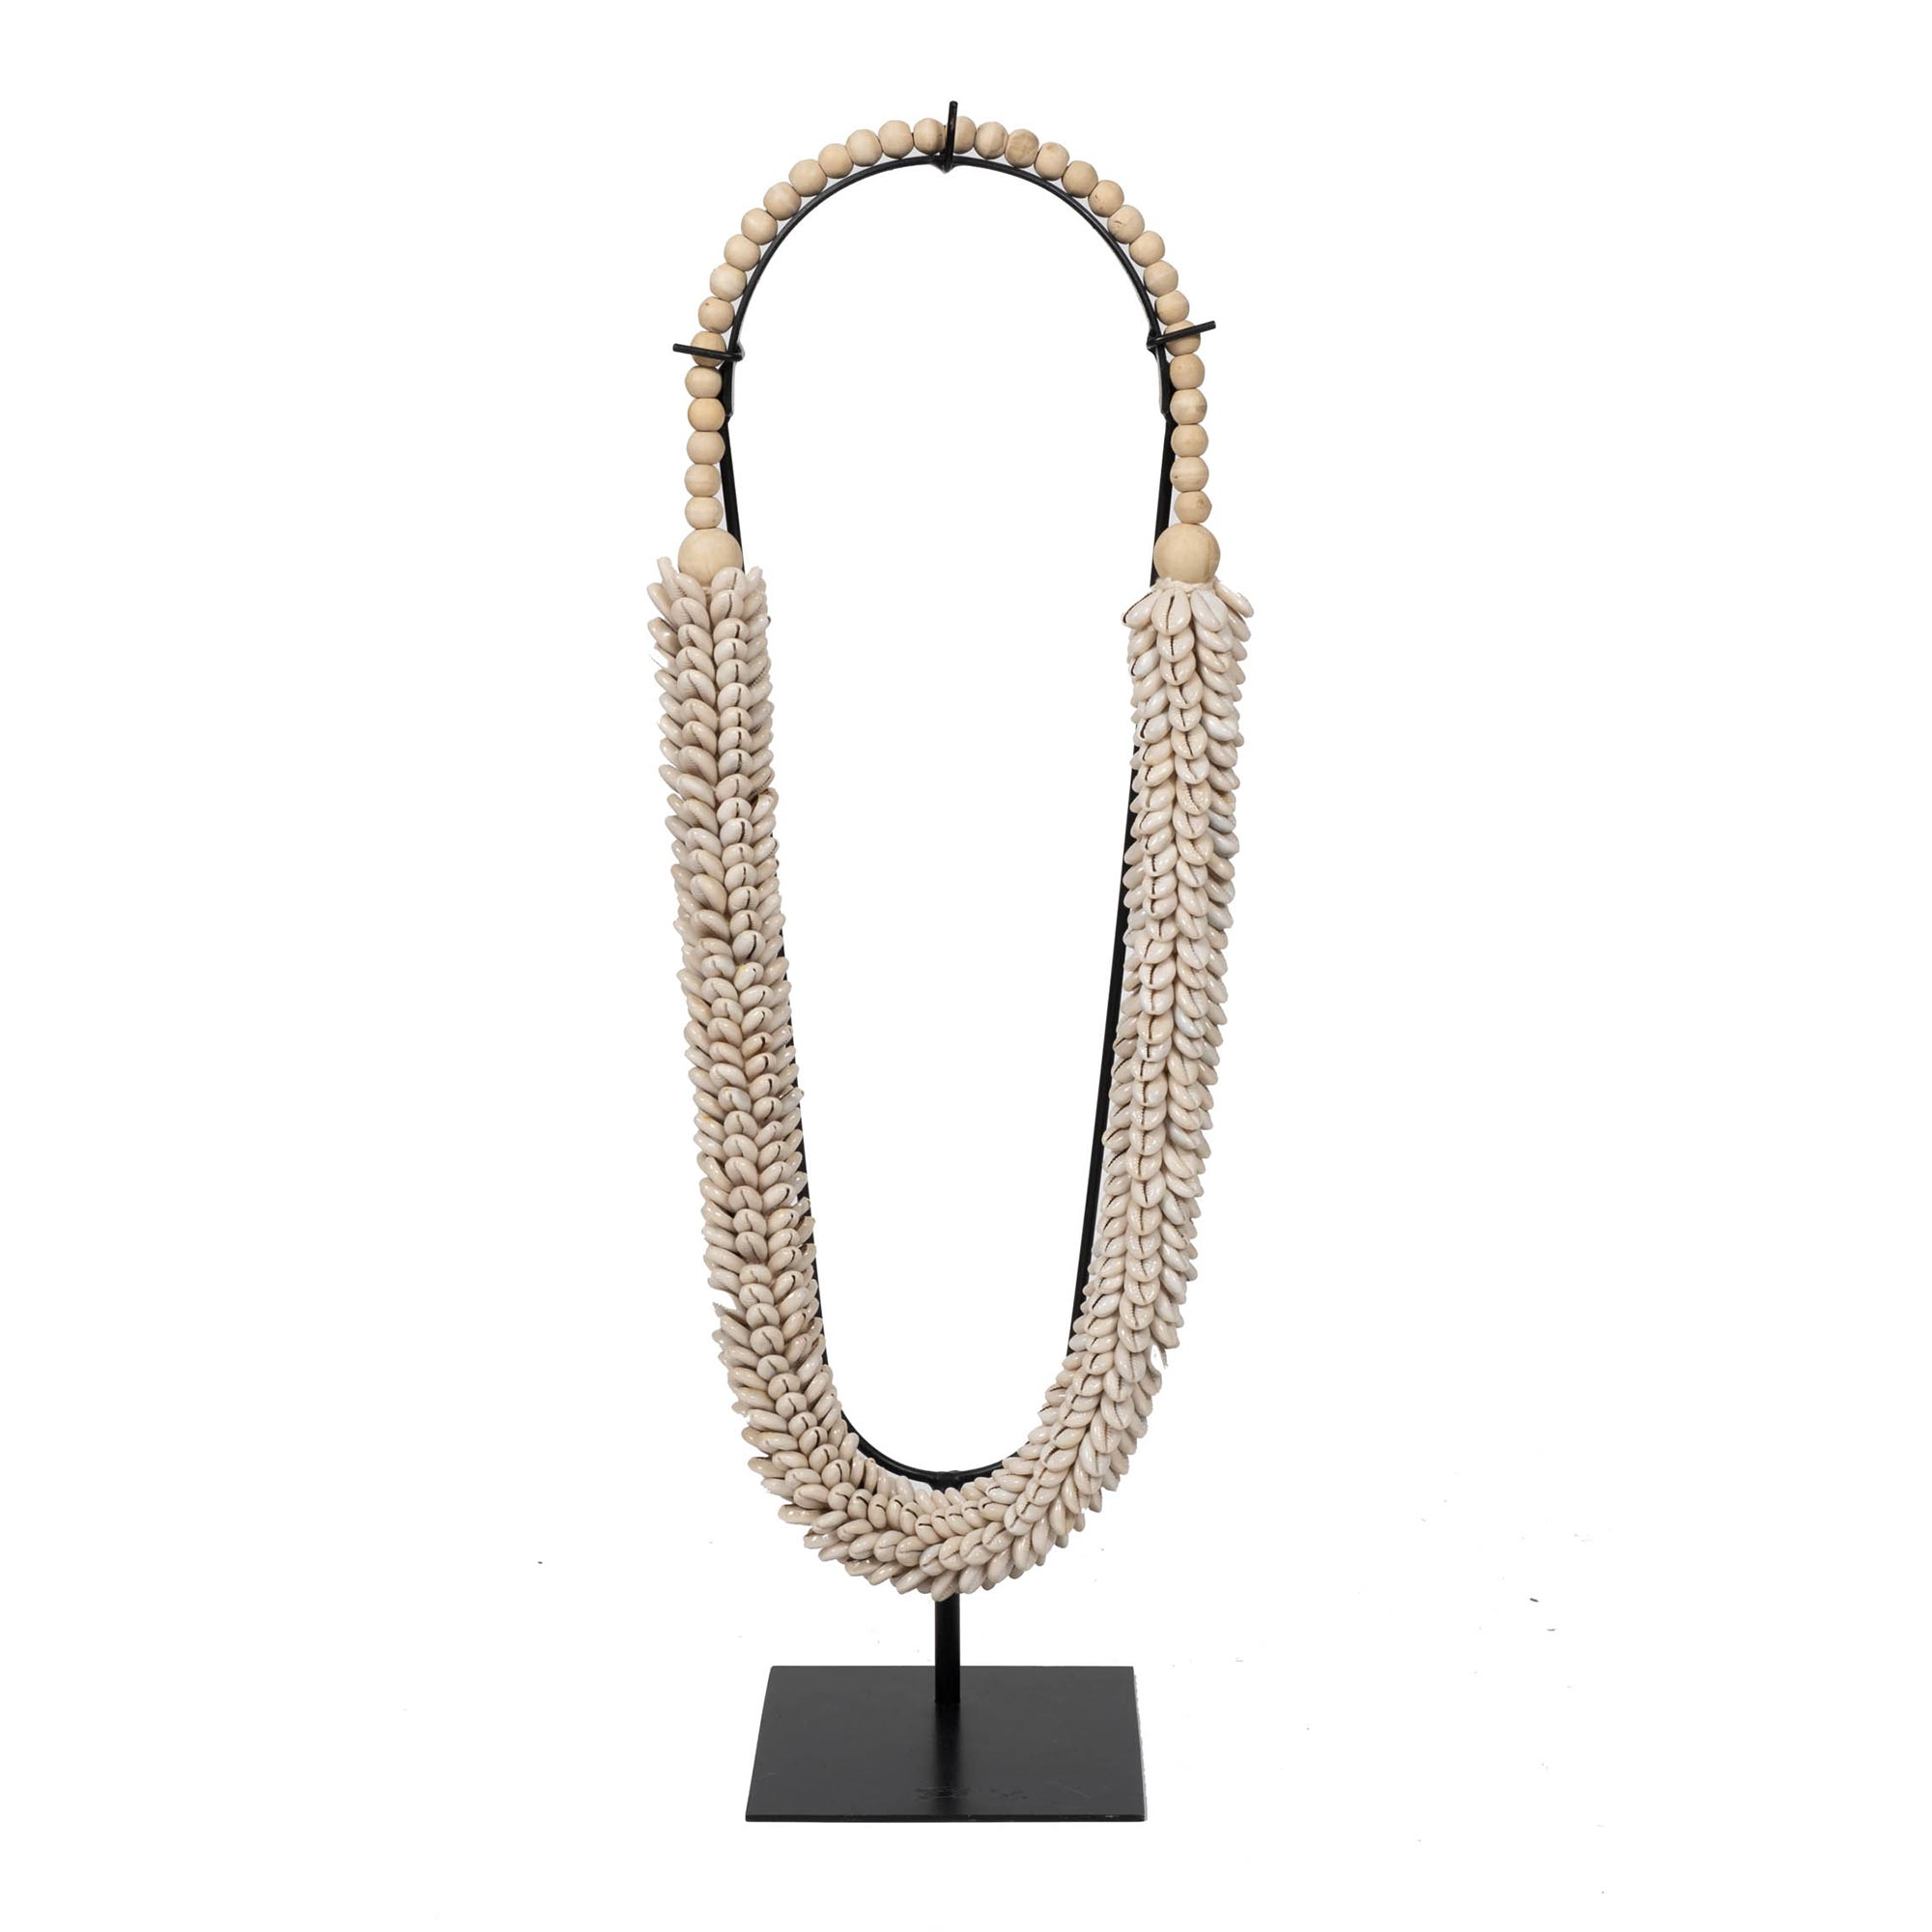 Cowry Shell Rope on Stand